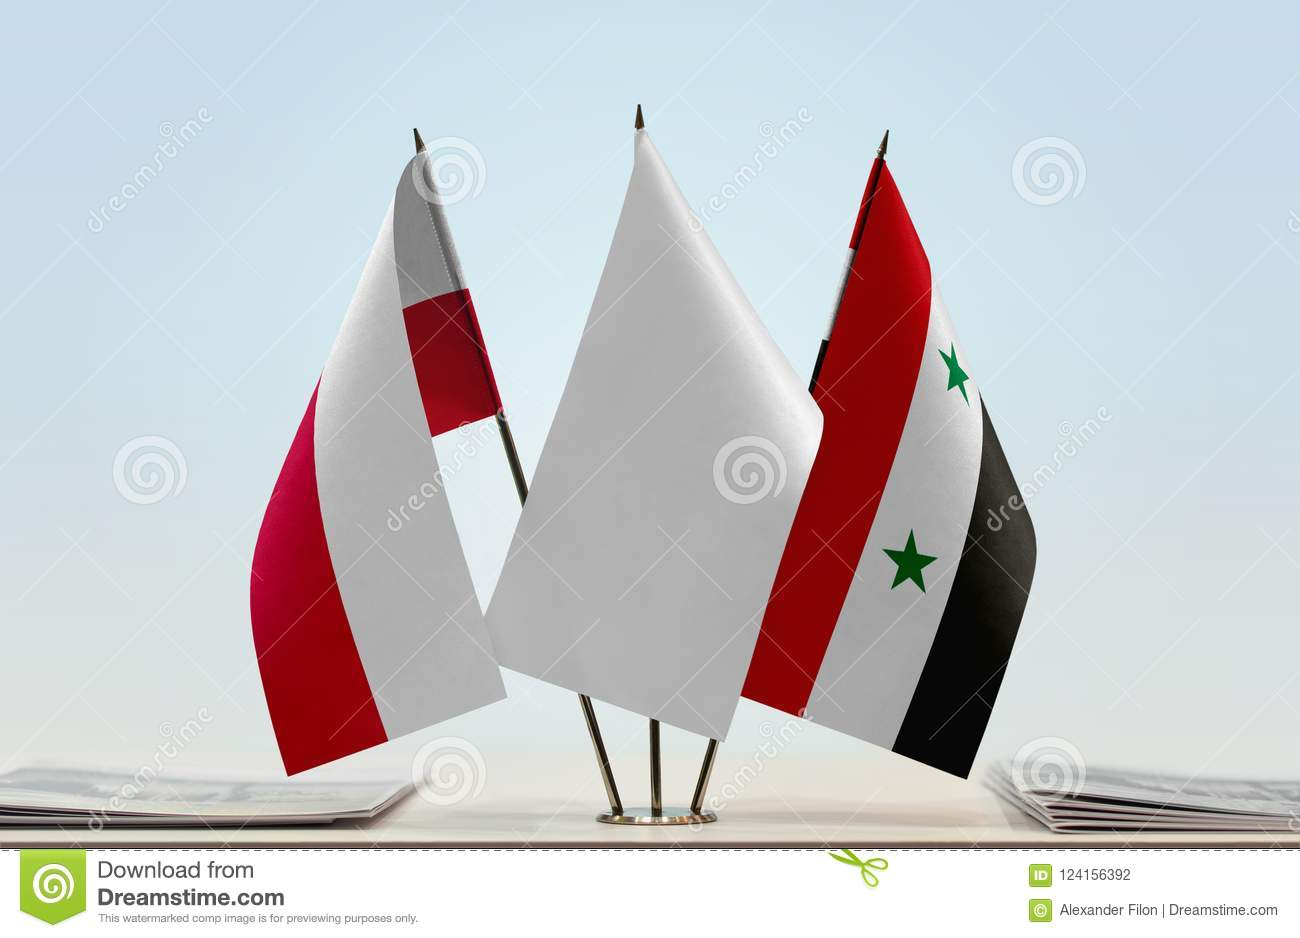 Flags of Poland and Syria